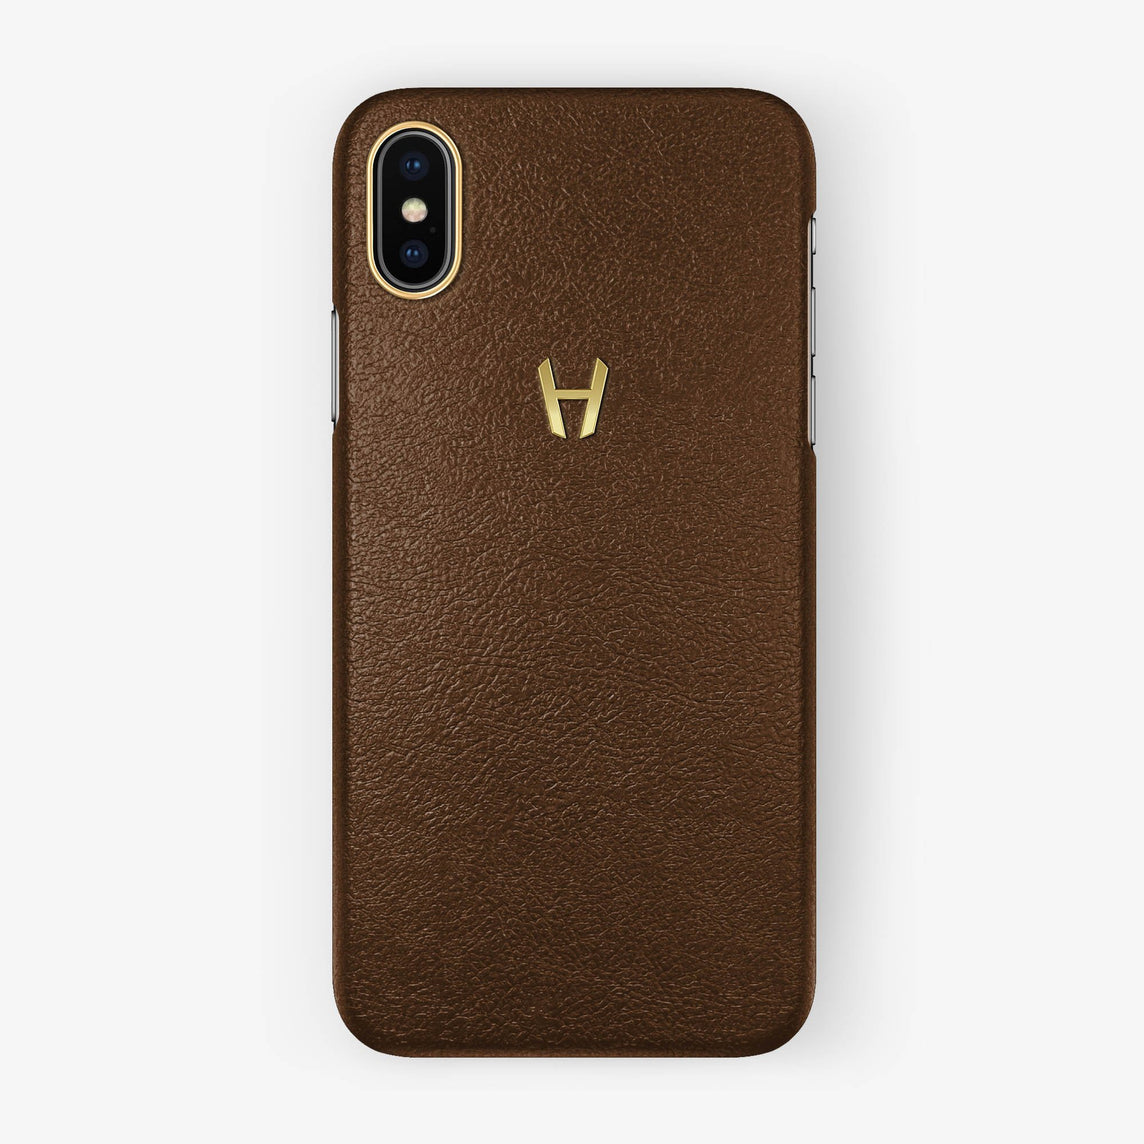 Brown Calfskin iPhone Case for iPhone X finishing yellow gold - Hadoro Luxury Cases